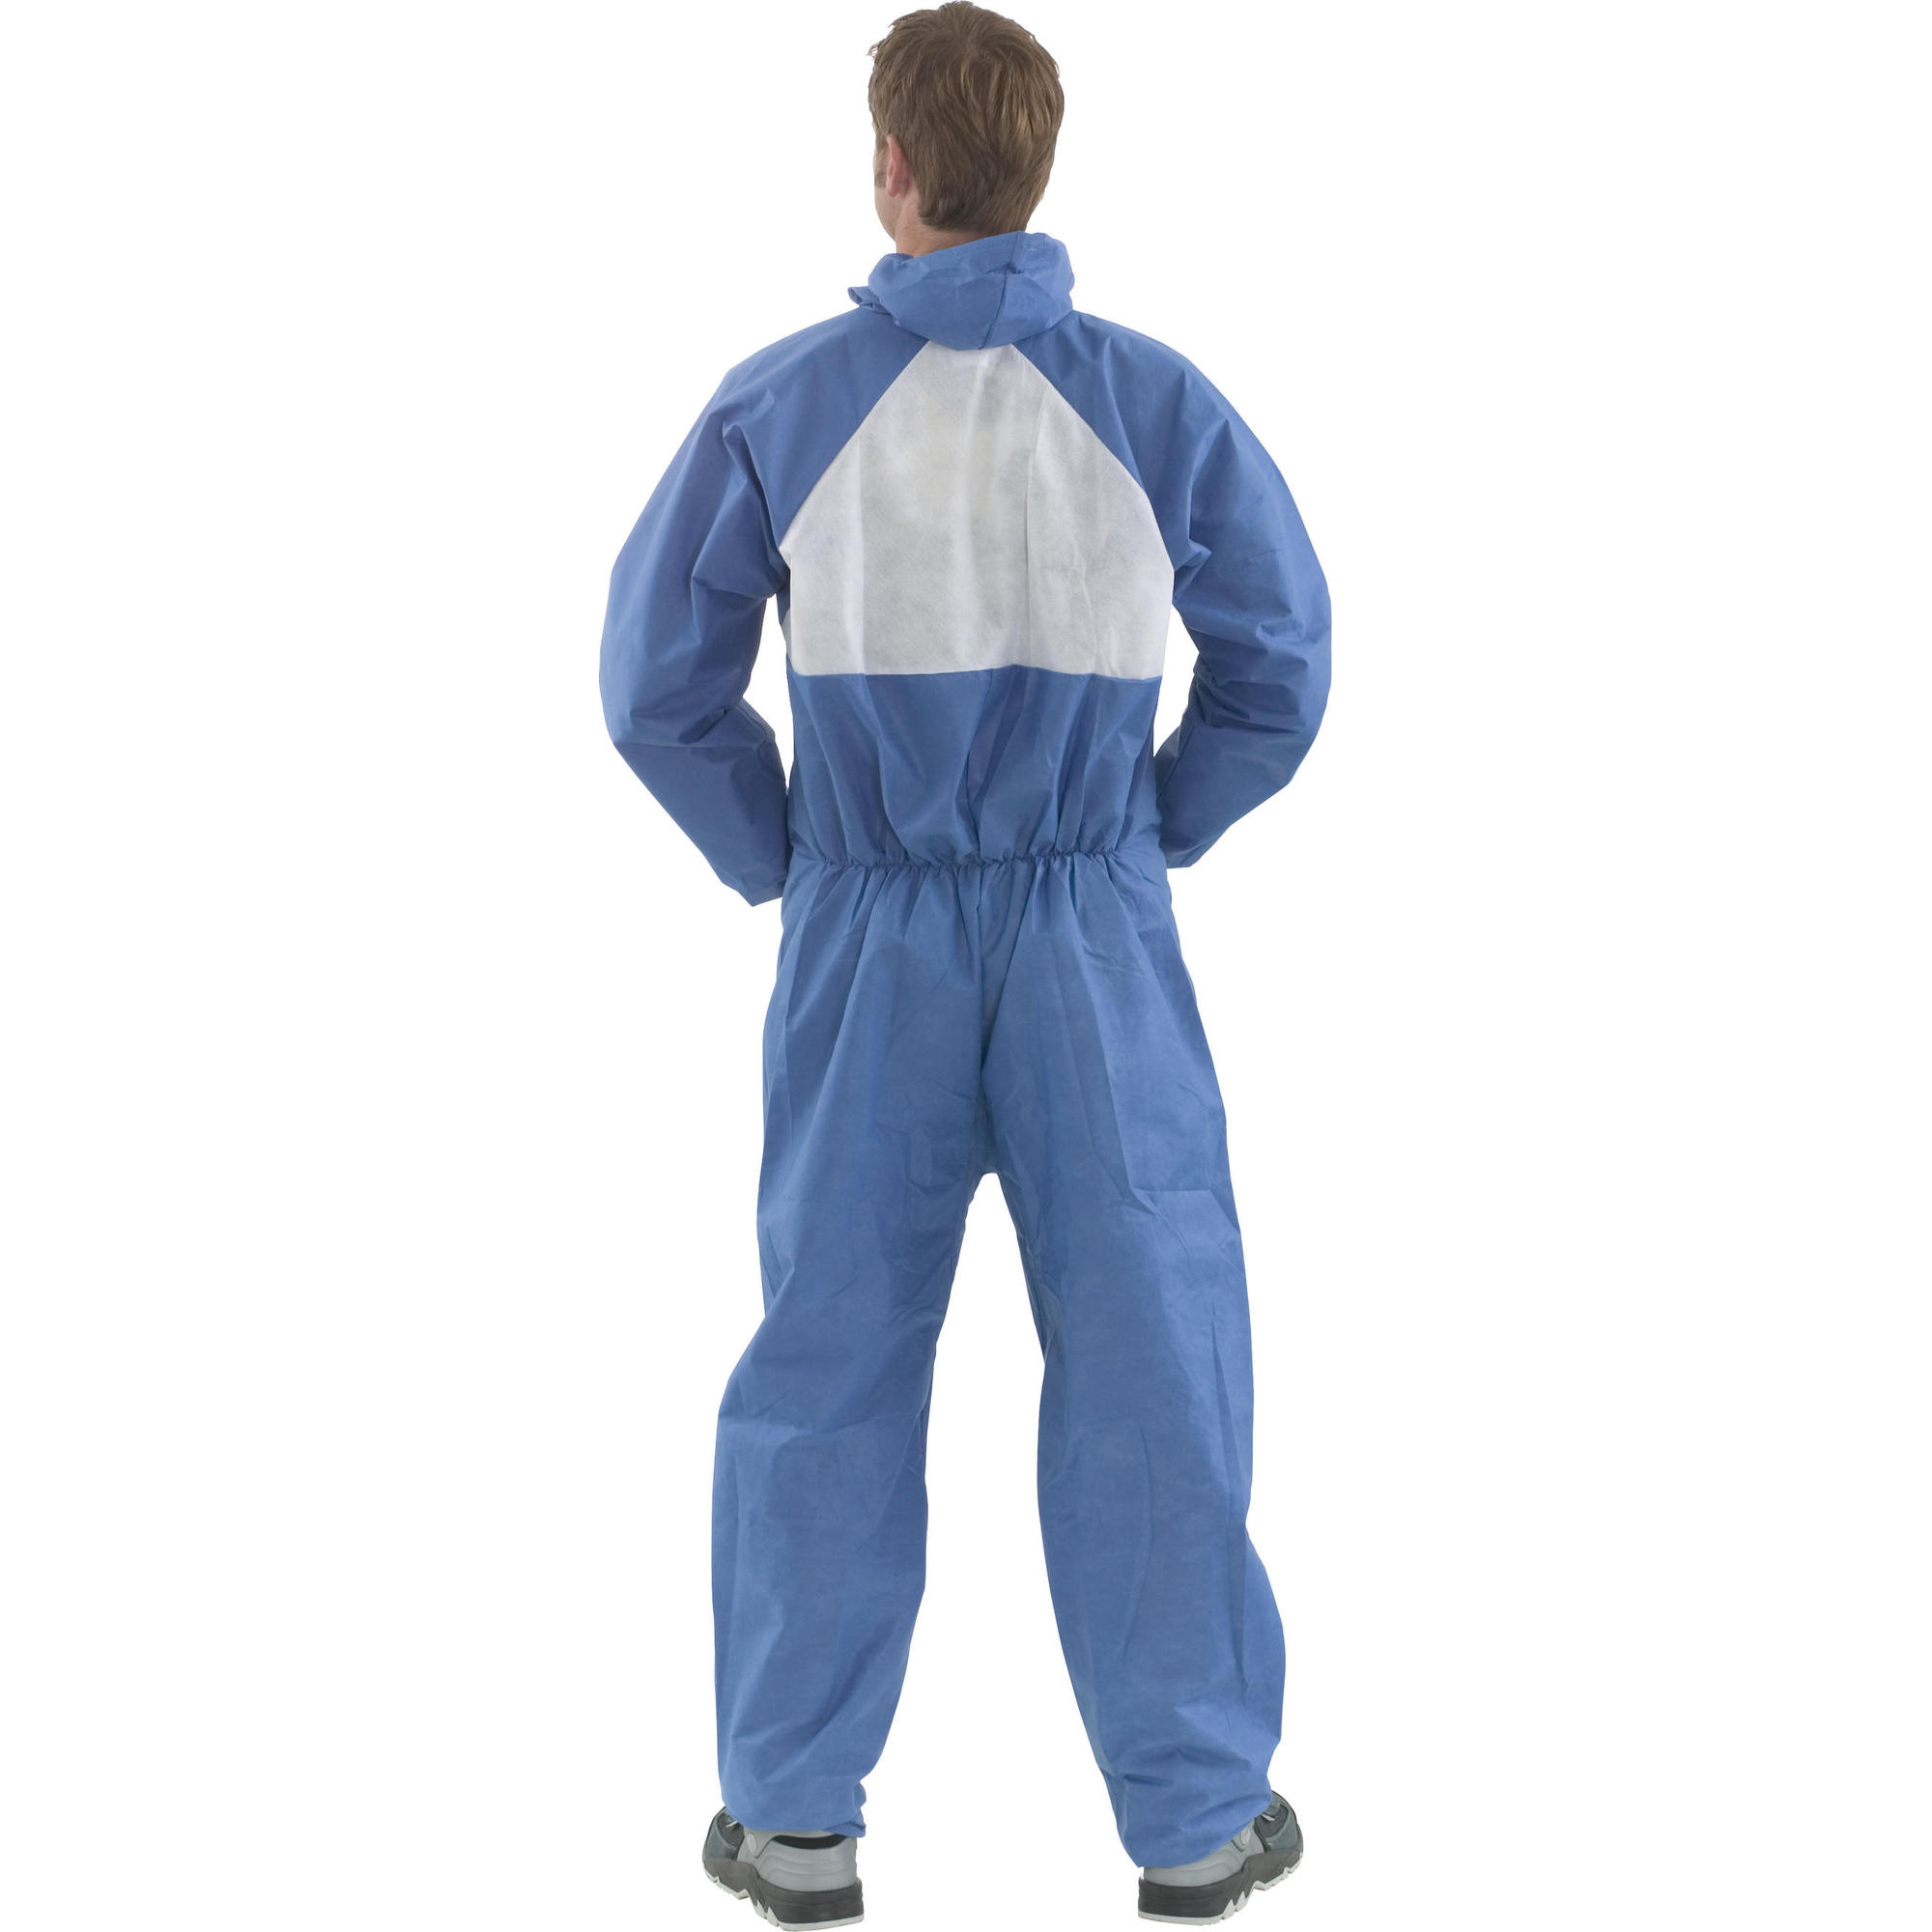 3M 4530 Fire Resistant Coveralls 4XL Blue/White Ref 45304XL [Pack 20] Up to 3 Day Leadtime